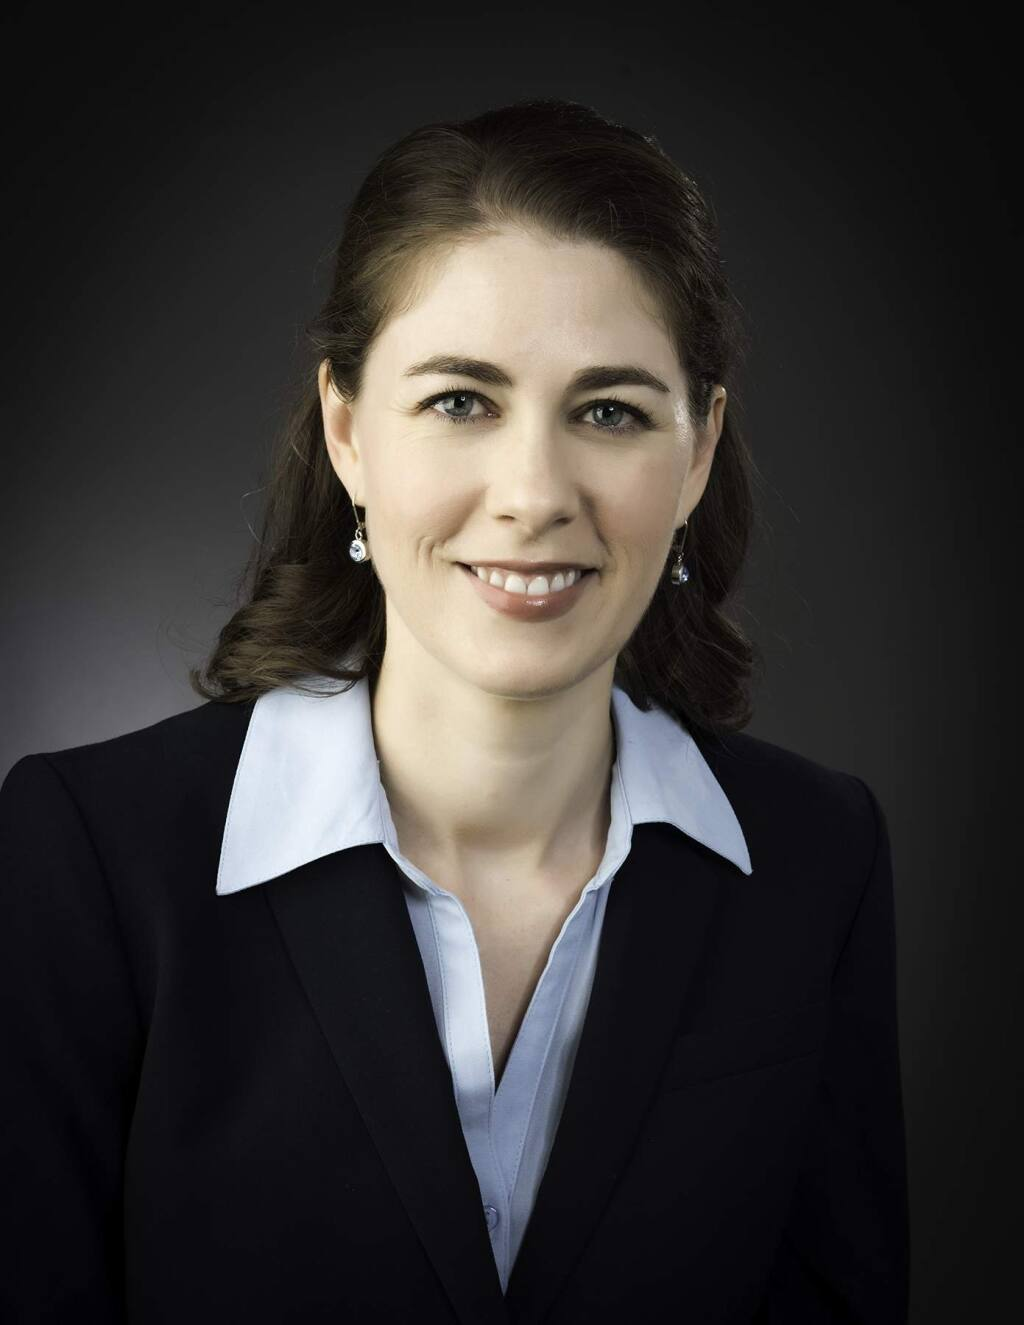 Deva Marie Proto, 37, clerk-recorder-assessor-registrar of voters for the county of Sonoma in Santa Rosa, is one of North Bay Business Journal's Forty Under 40 notable young professionals for 2019. (EAA PHOTO)